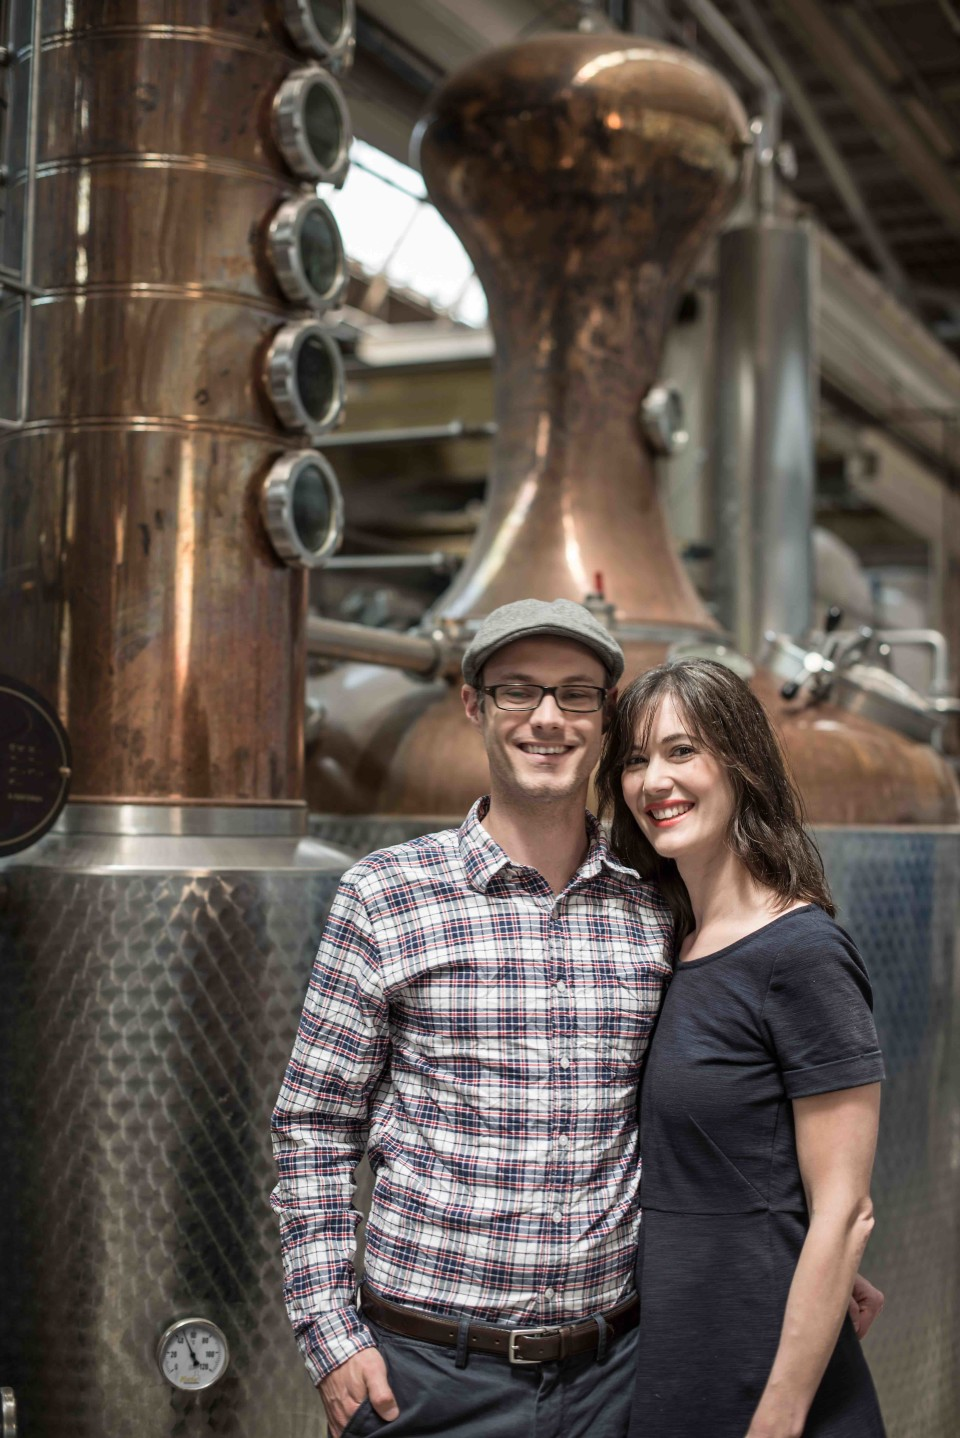 Robert and Sonat Birnecker, cofounders of Chicago-based Koval Distillery, produce a variety of spirits, including gin, vodka, brandy, liqueur and several whiskies made from different grains. The husband-and-wife team has been instrumental in securing legislation that's favorable to craft distilleries in Illinois.